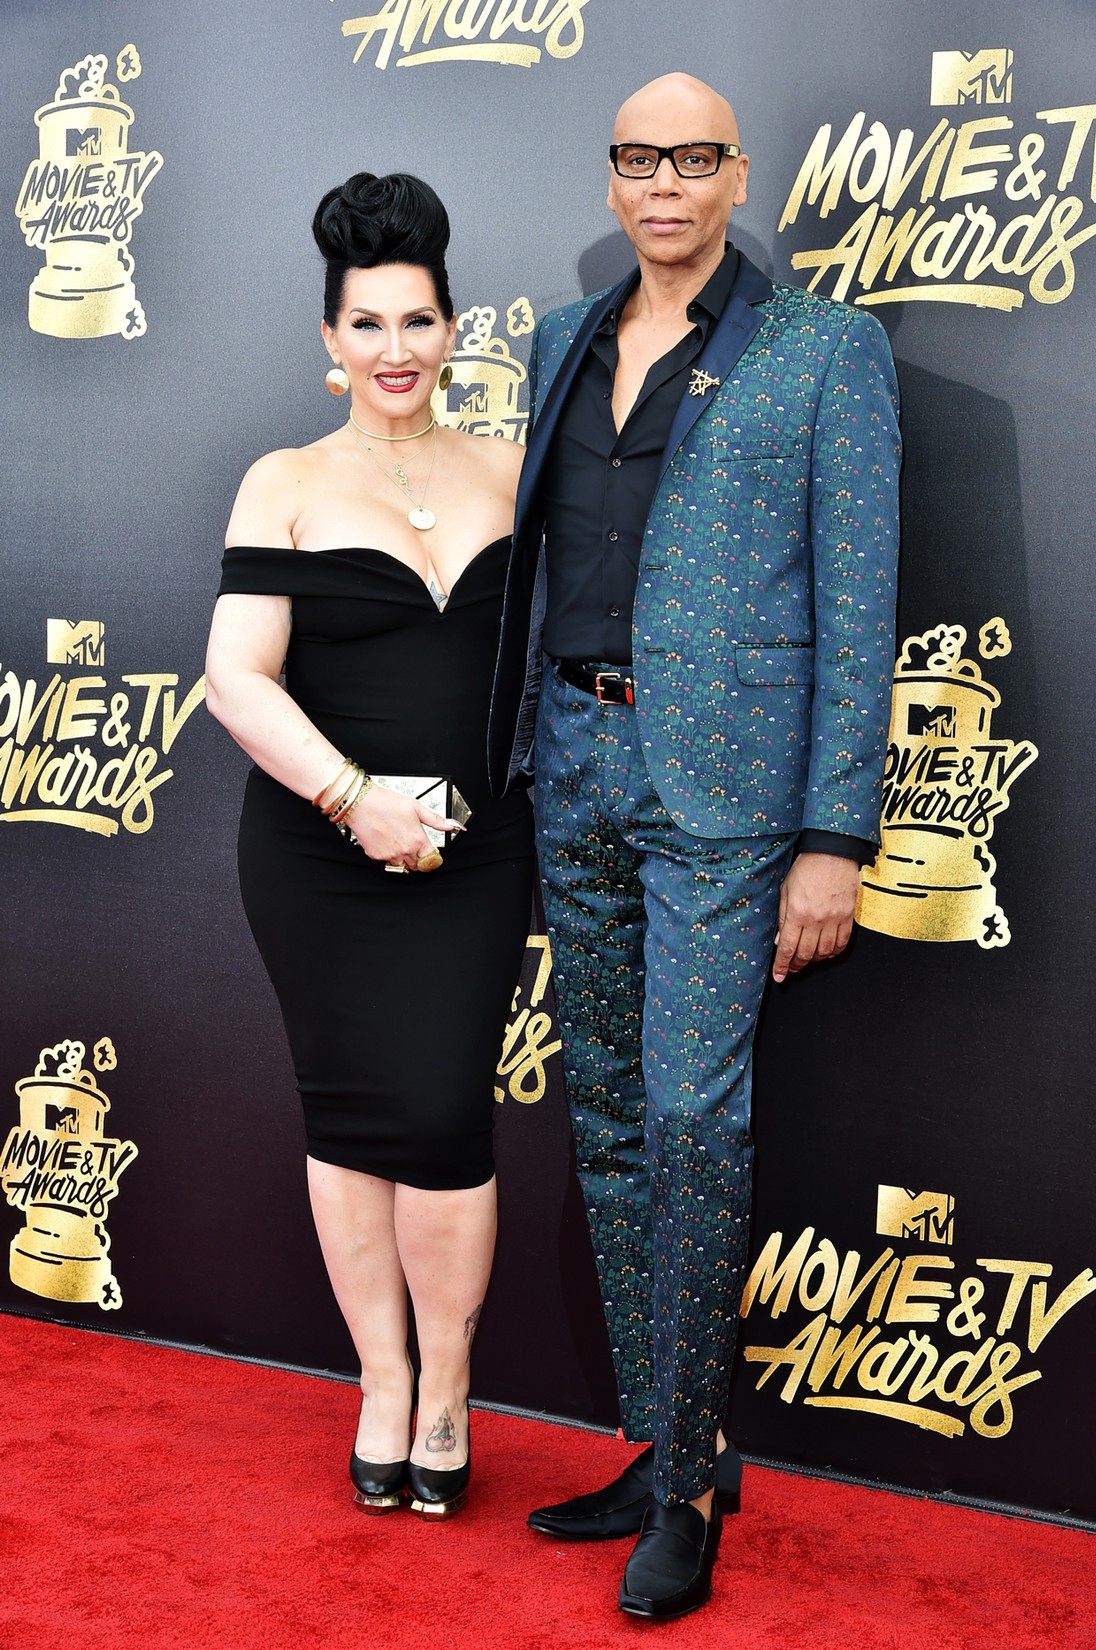 Michelle Visage and RuPaul attend the 2017 MTV Movie and TV Awards at The Shrine Auditorium on May 7, 2017 in Los Angeles.